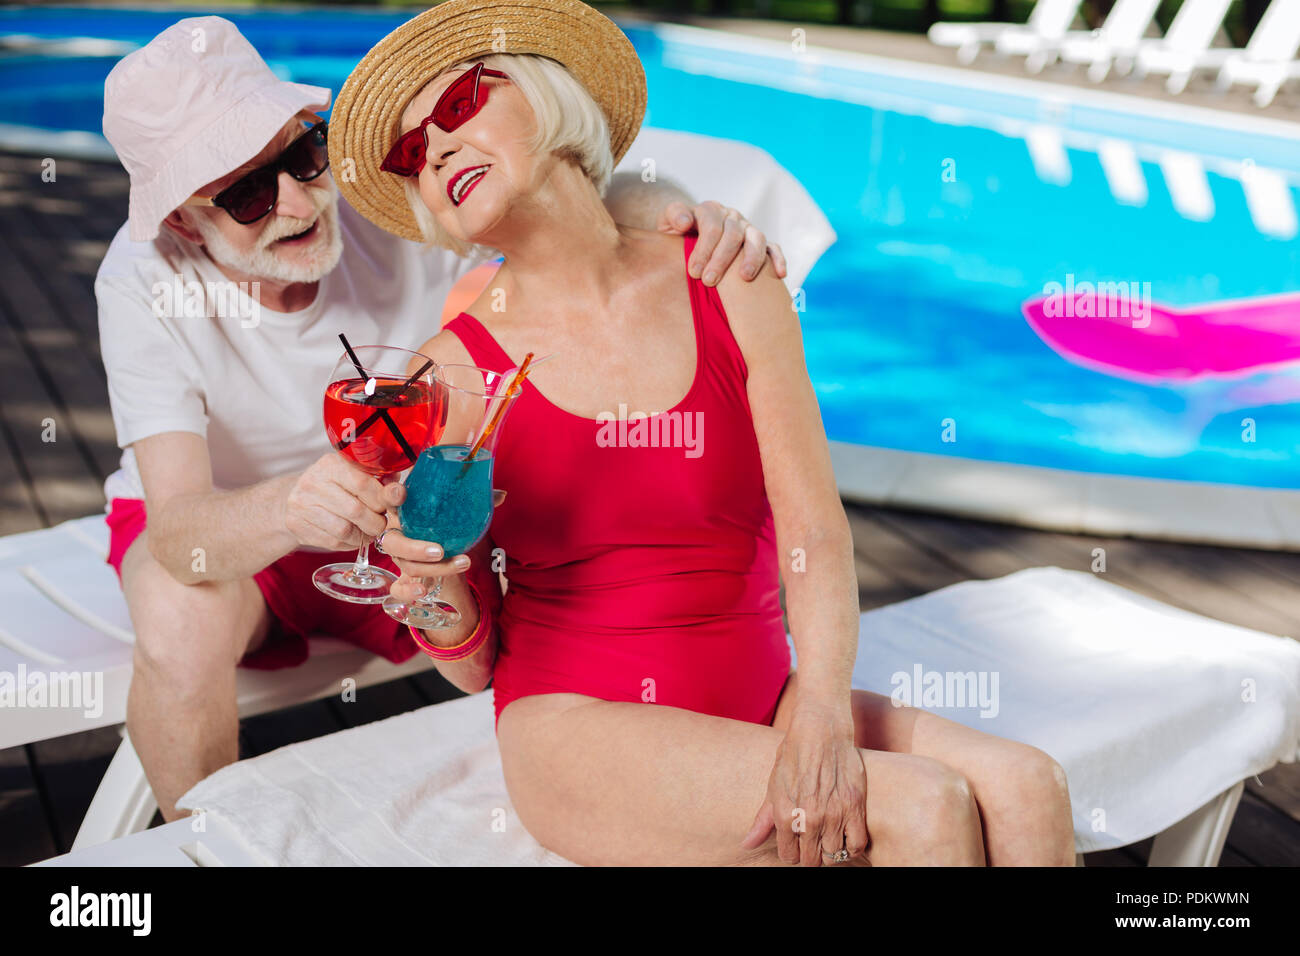 Mature woman wearing red swimming suit looking at her husband - Stock Image